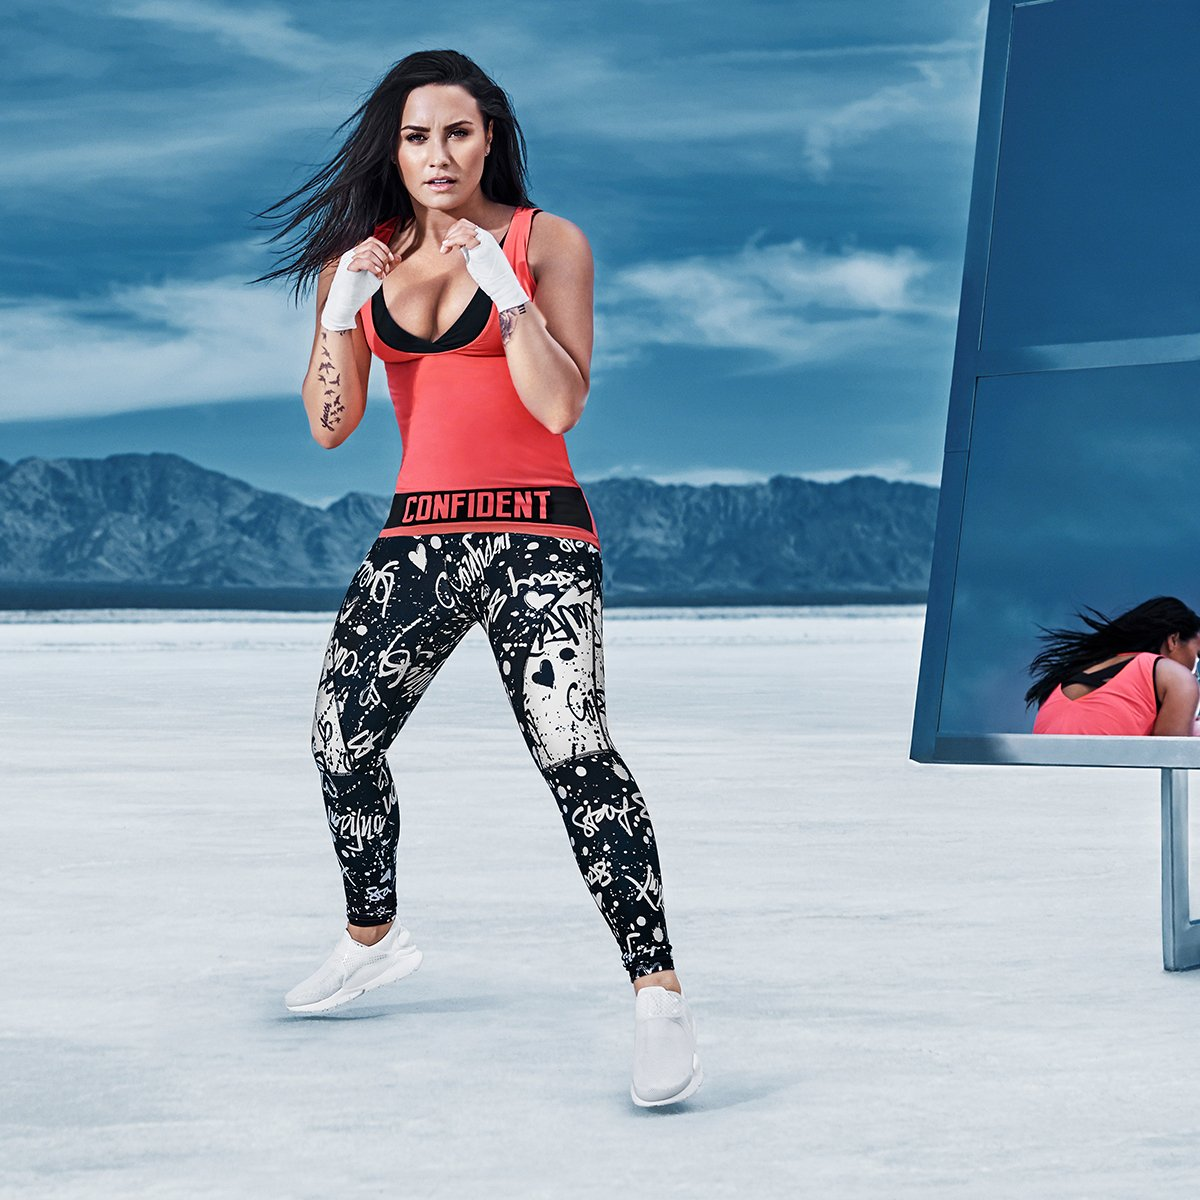 We can match in our confident tanks if you grab one from the #Demi4Fabletics collection �� https://t.co/GKN6sj78W6 https://t.co/i6jMtkIvyp